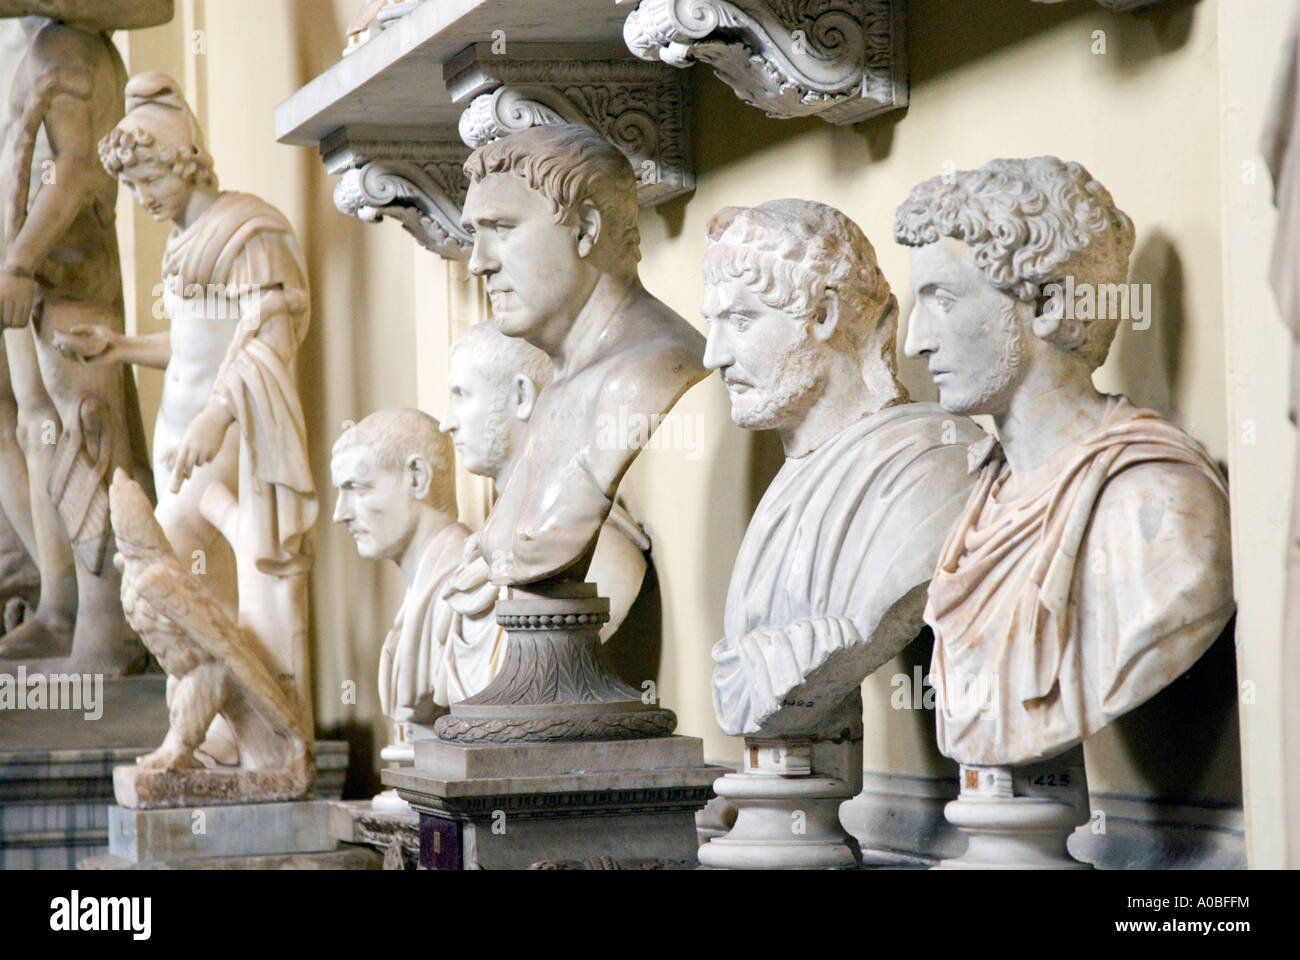 Busts of distinguished ancient Romans in the Vatican Museum Rome Italy - Stock Image